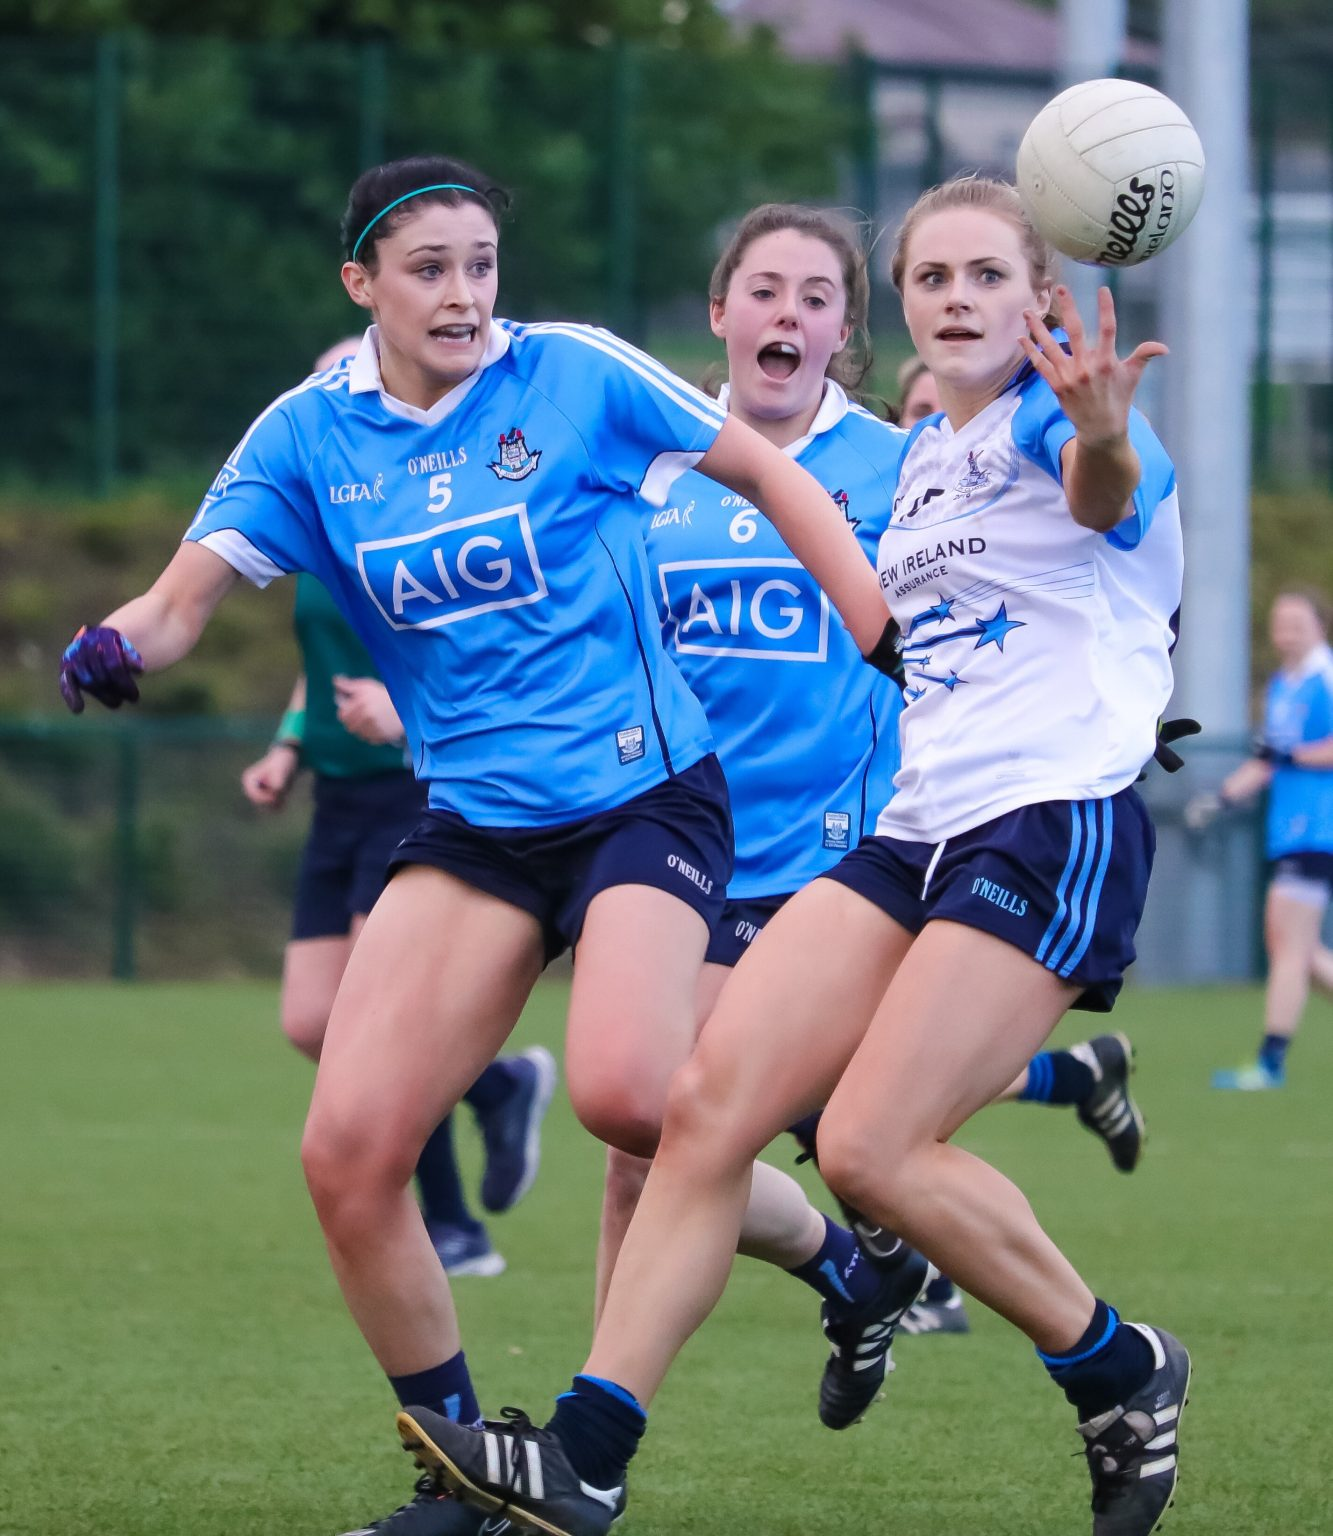 Dublin's Olwen Carey Puts In A Tackle In The 2016 Ladies Football Dubs Stars Game (Image Credit: We Are Dublin GAA)